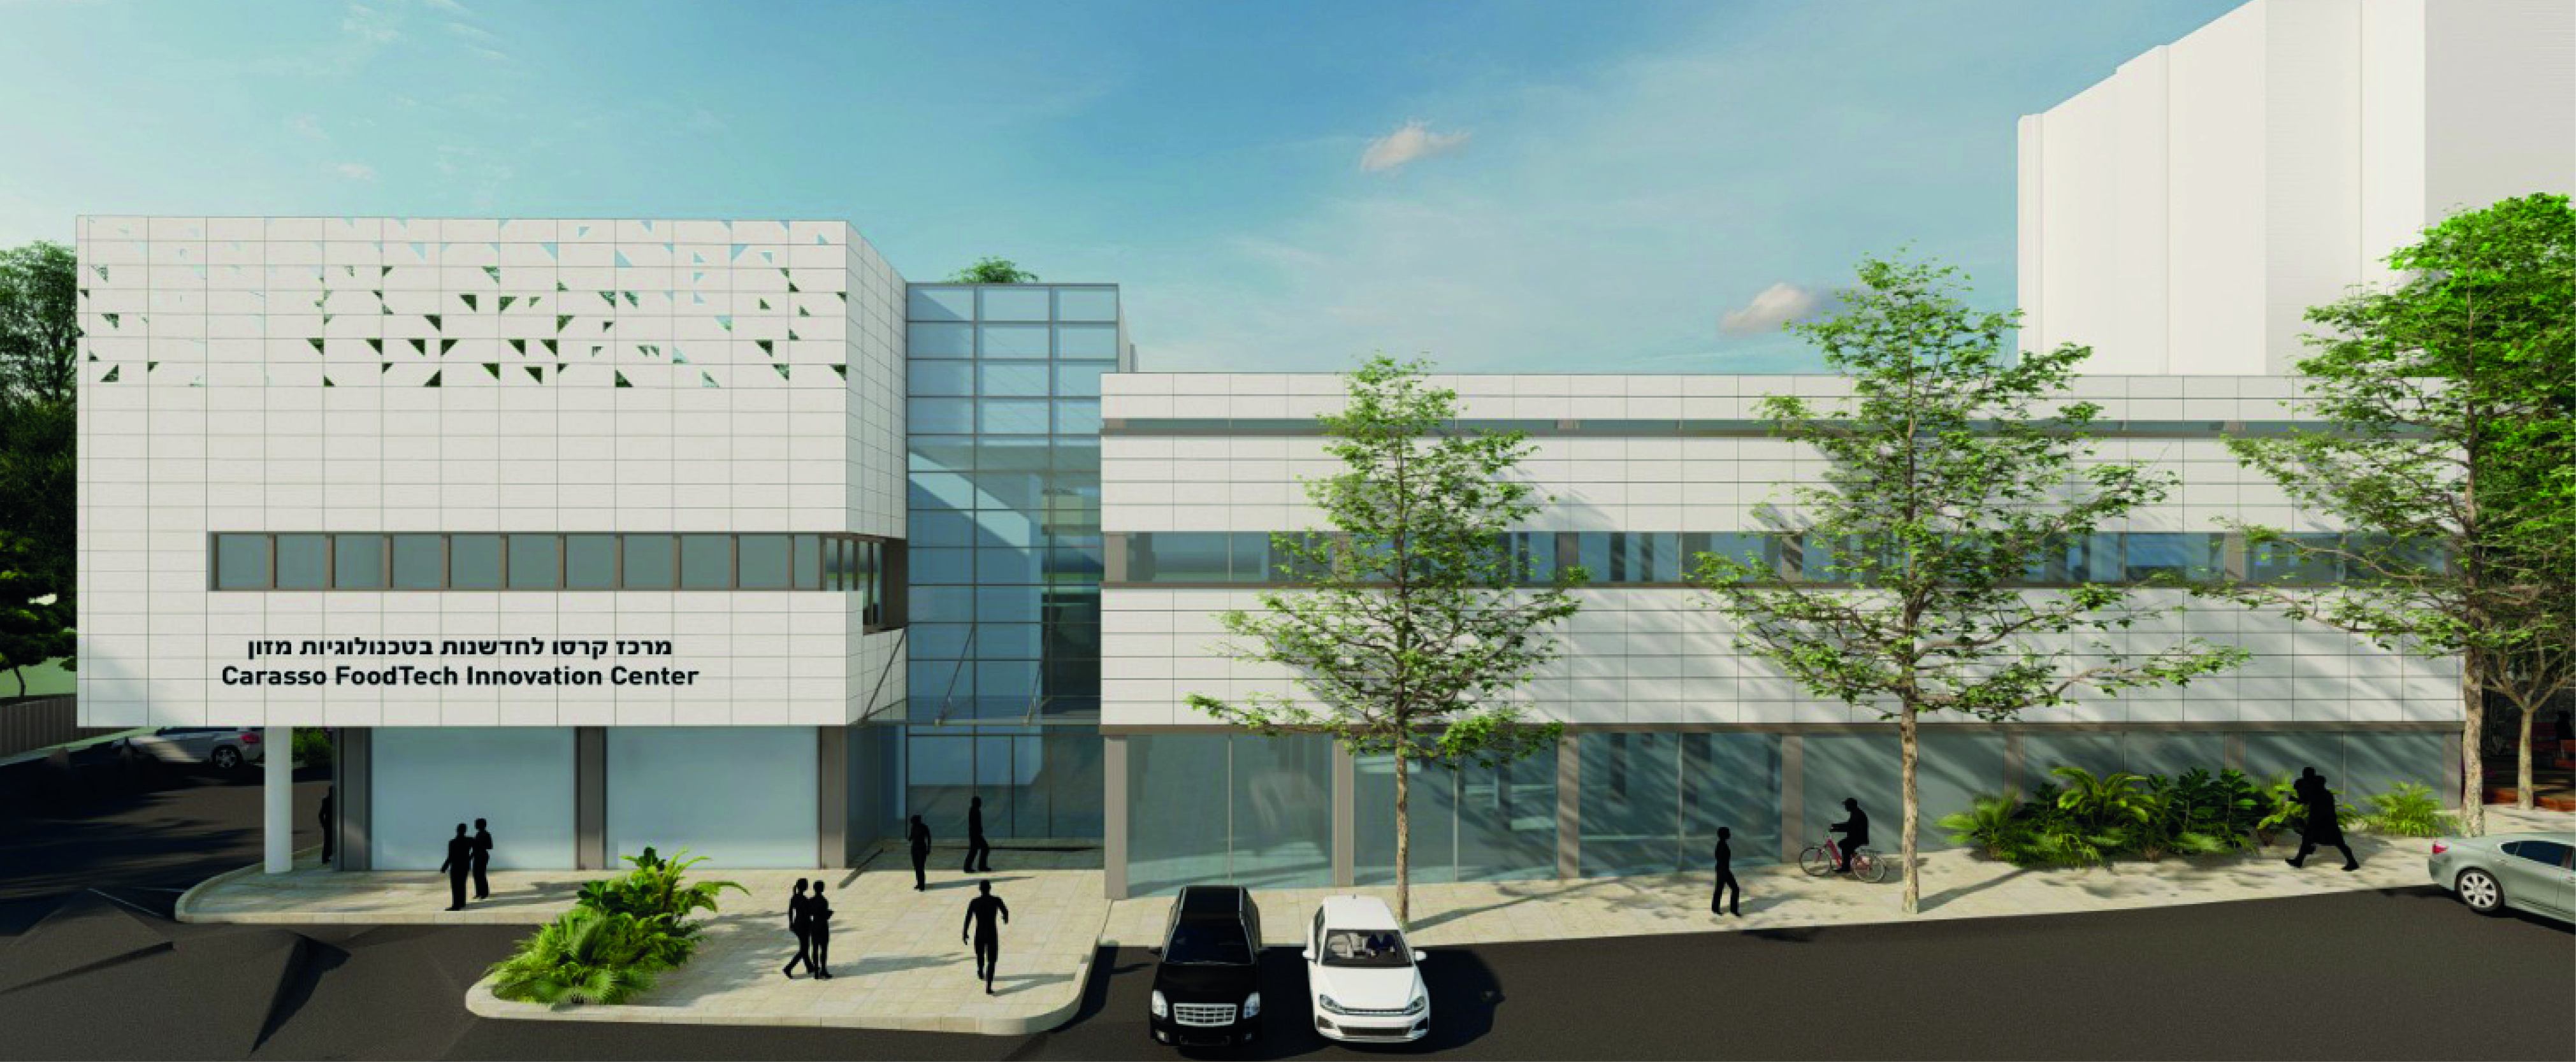 New FoodTech Innovation Center on Campus